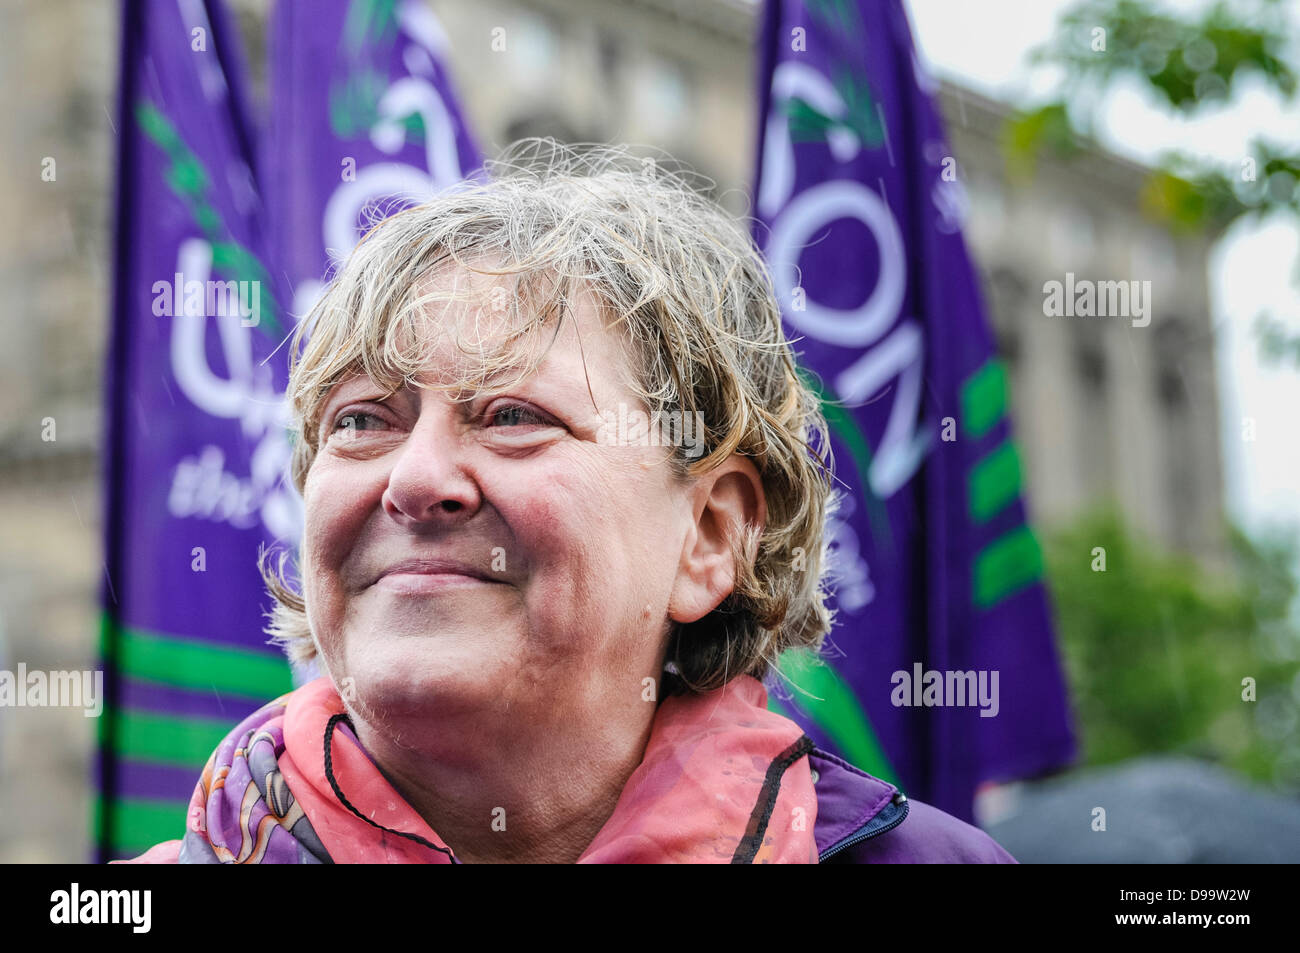 Belfast, Northern Ireland. 15th June 2013. Patricia McKeown from the Irish Congress of Trade Unions (ICTU) was said - Stock Image